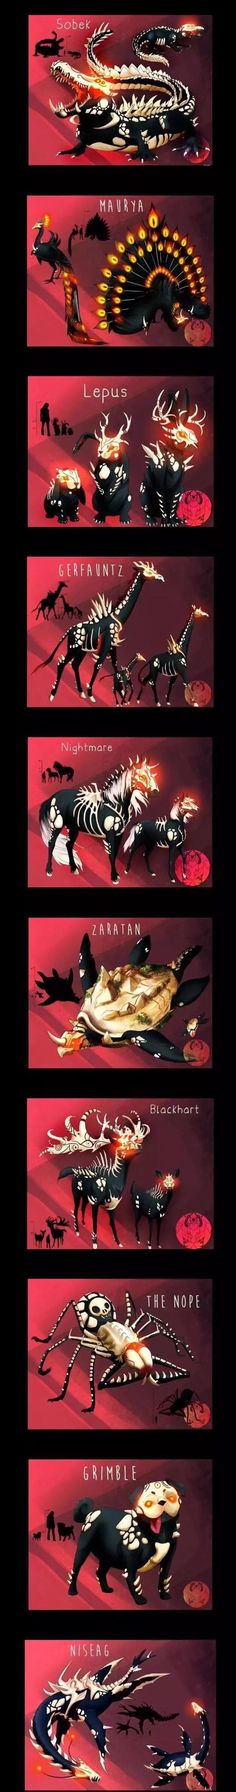 These are some cool ideas for the Grimm. I like the pug one the best